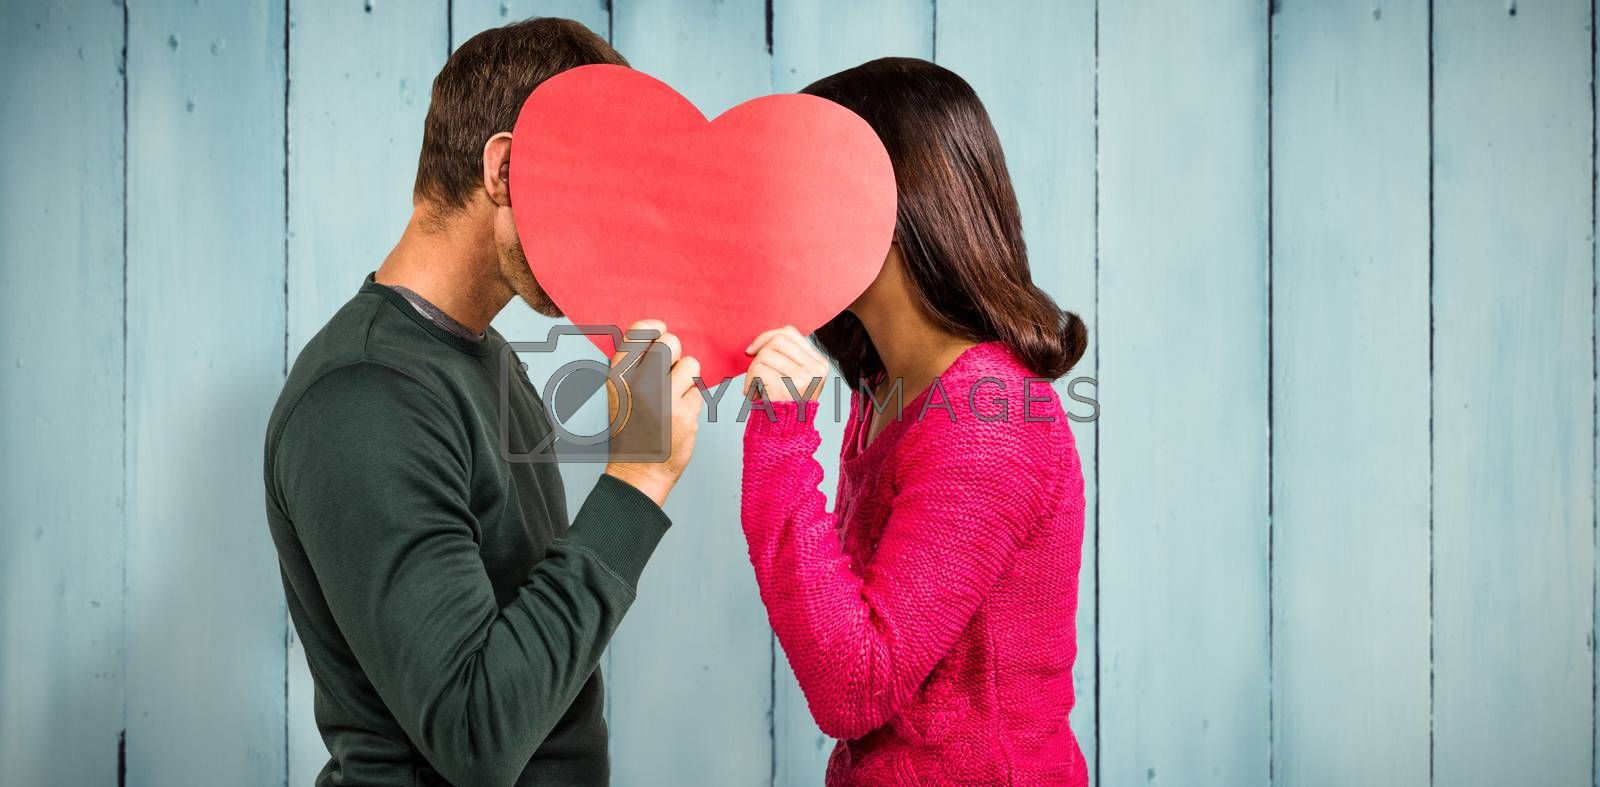 Couple covering faces with heart shape  against wooden planks